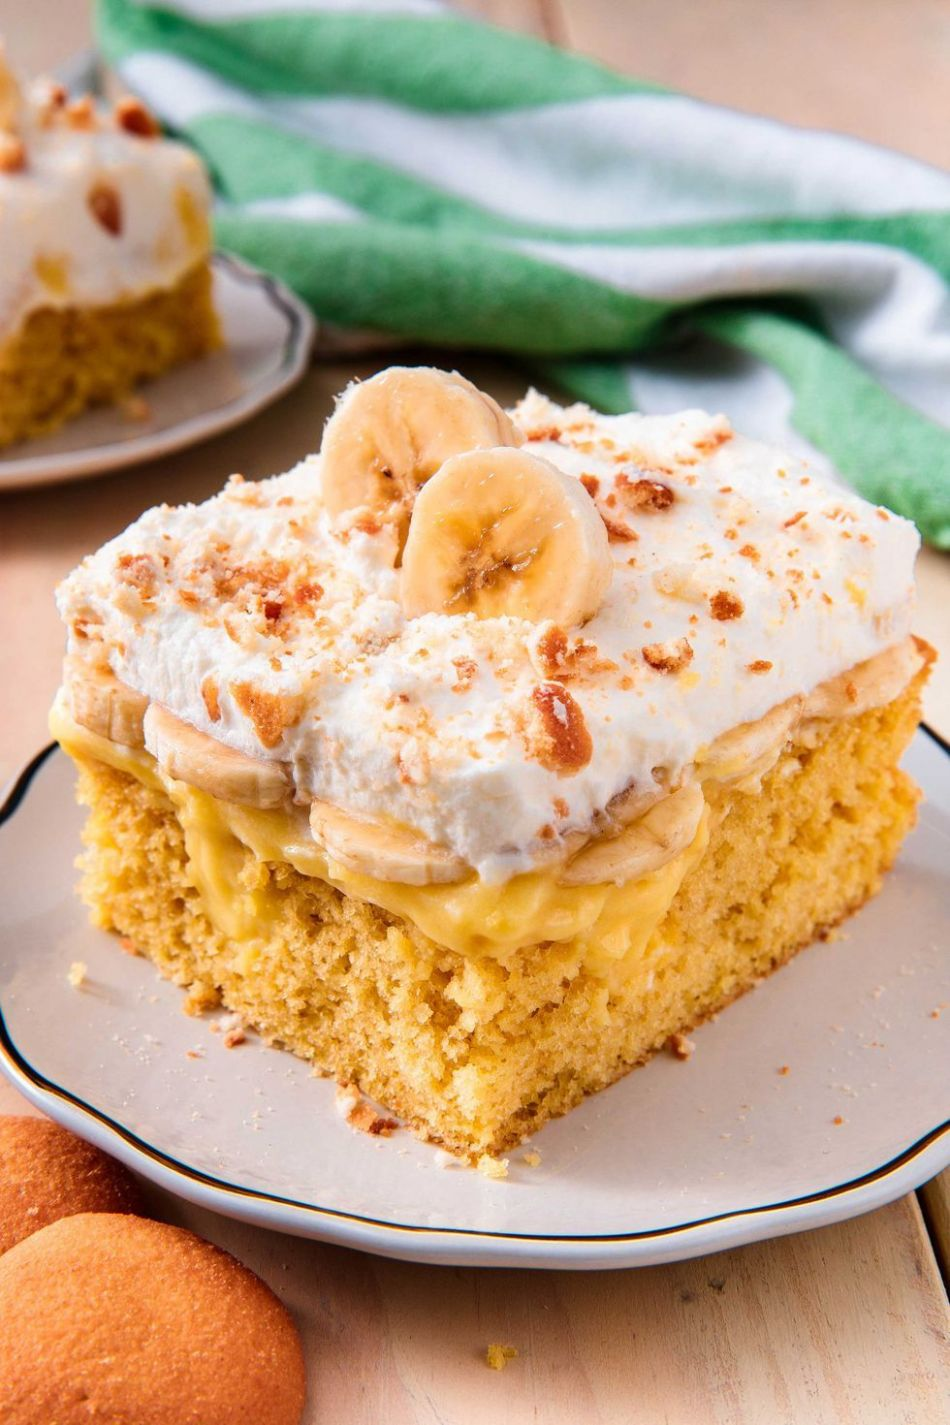 11+ Easy Easter Desserts - Recipes for Cute Easter Dessert Ideas